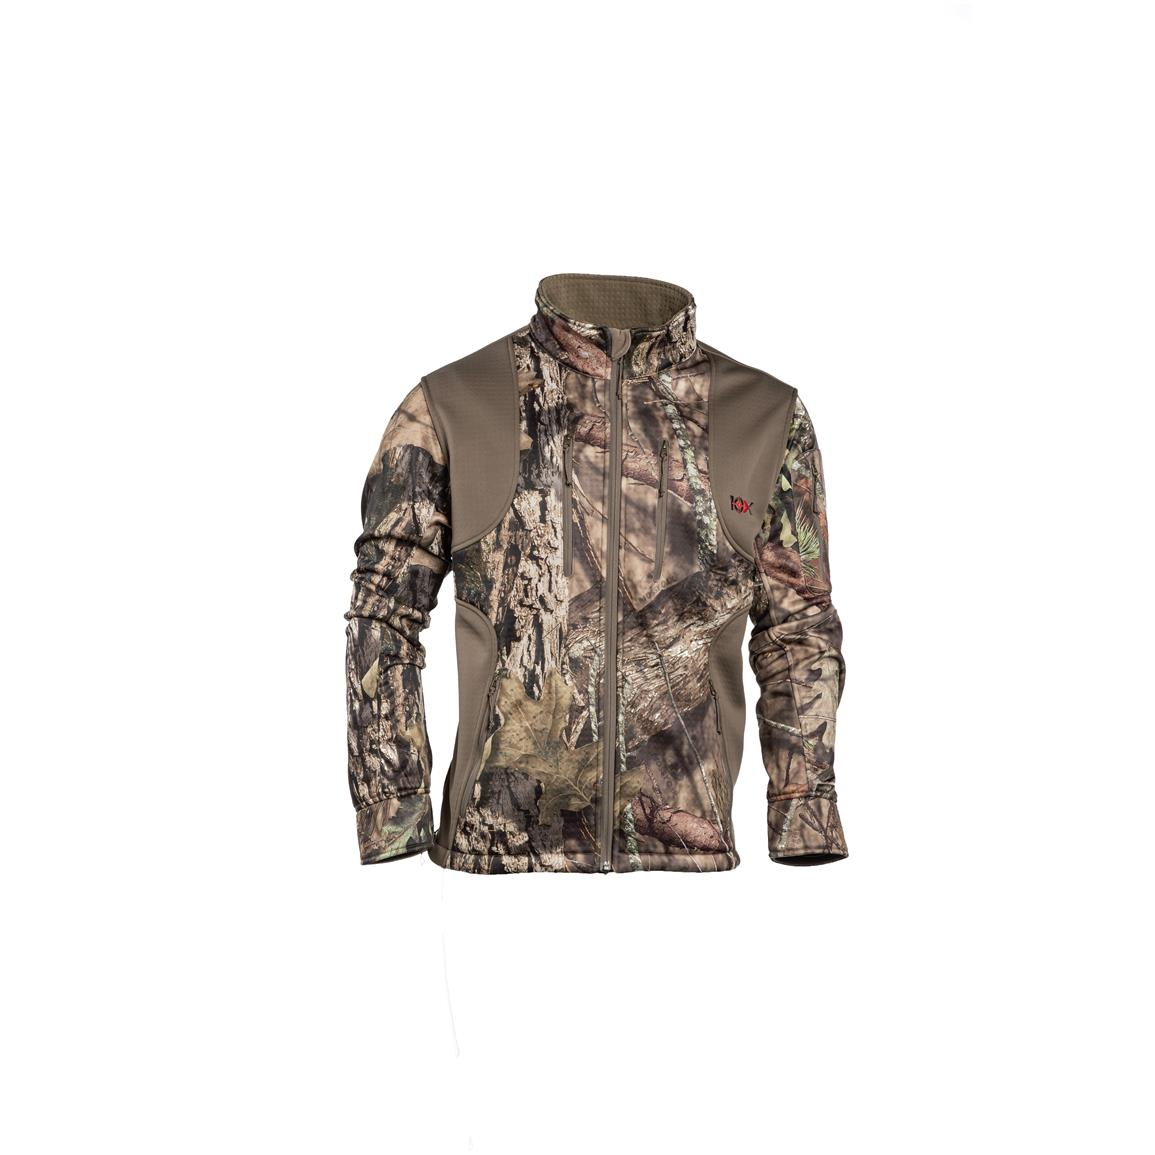 10X Men's Scentrex Lock Down Jacket, Mossy Oak Break-Up Country